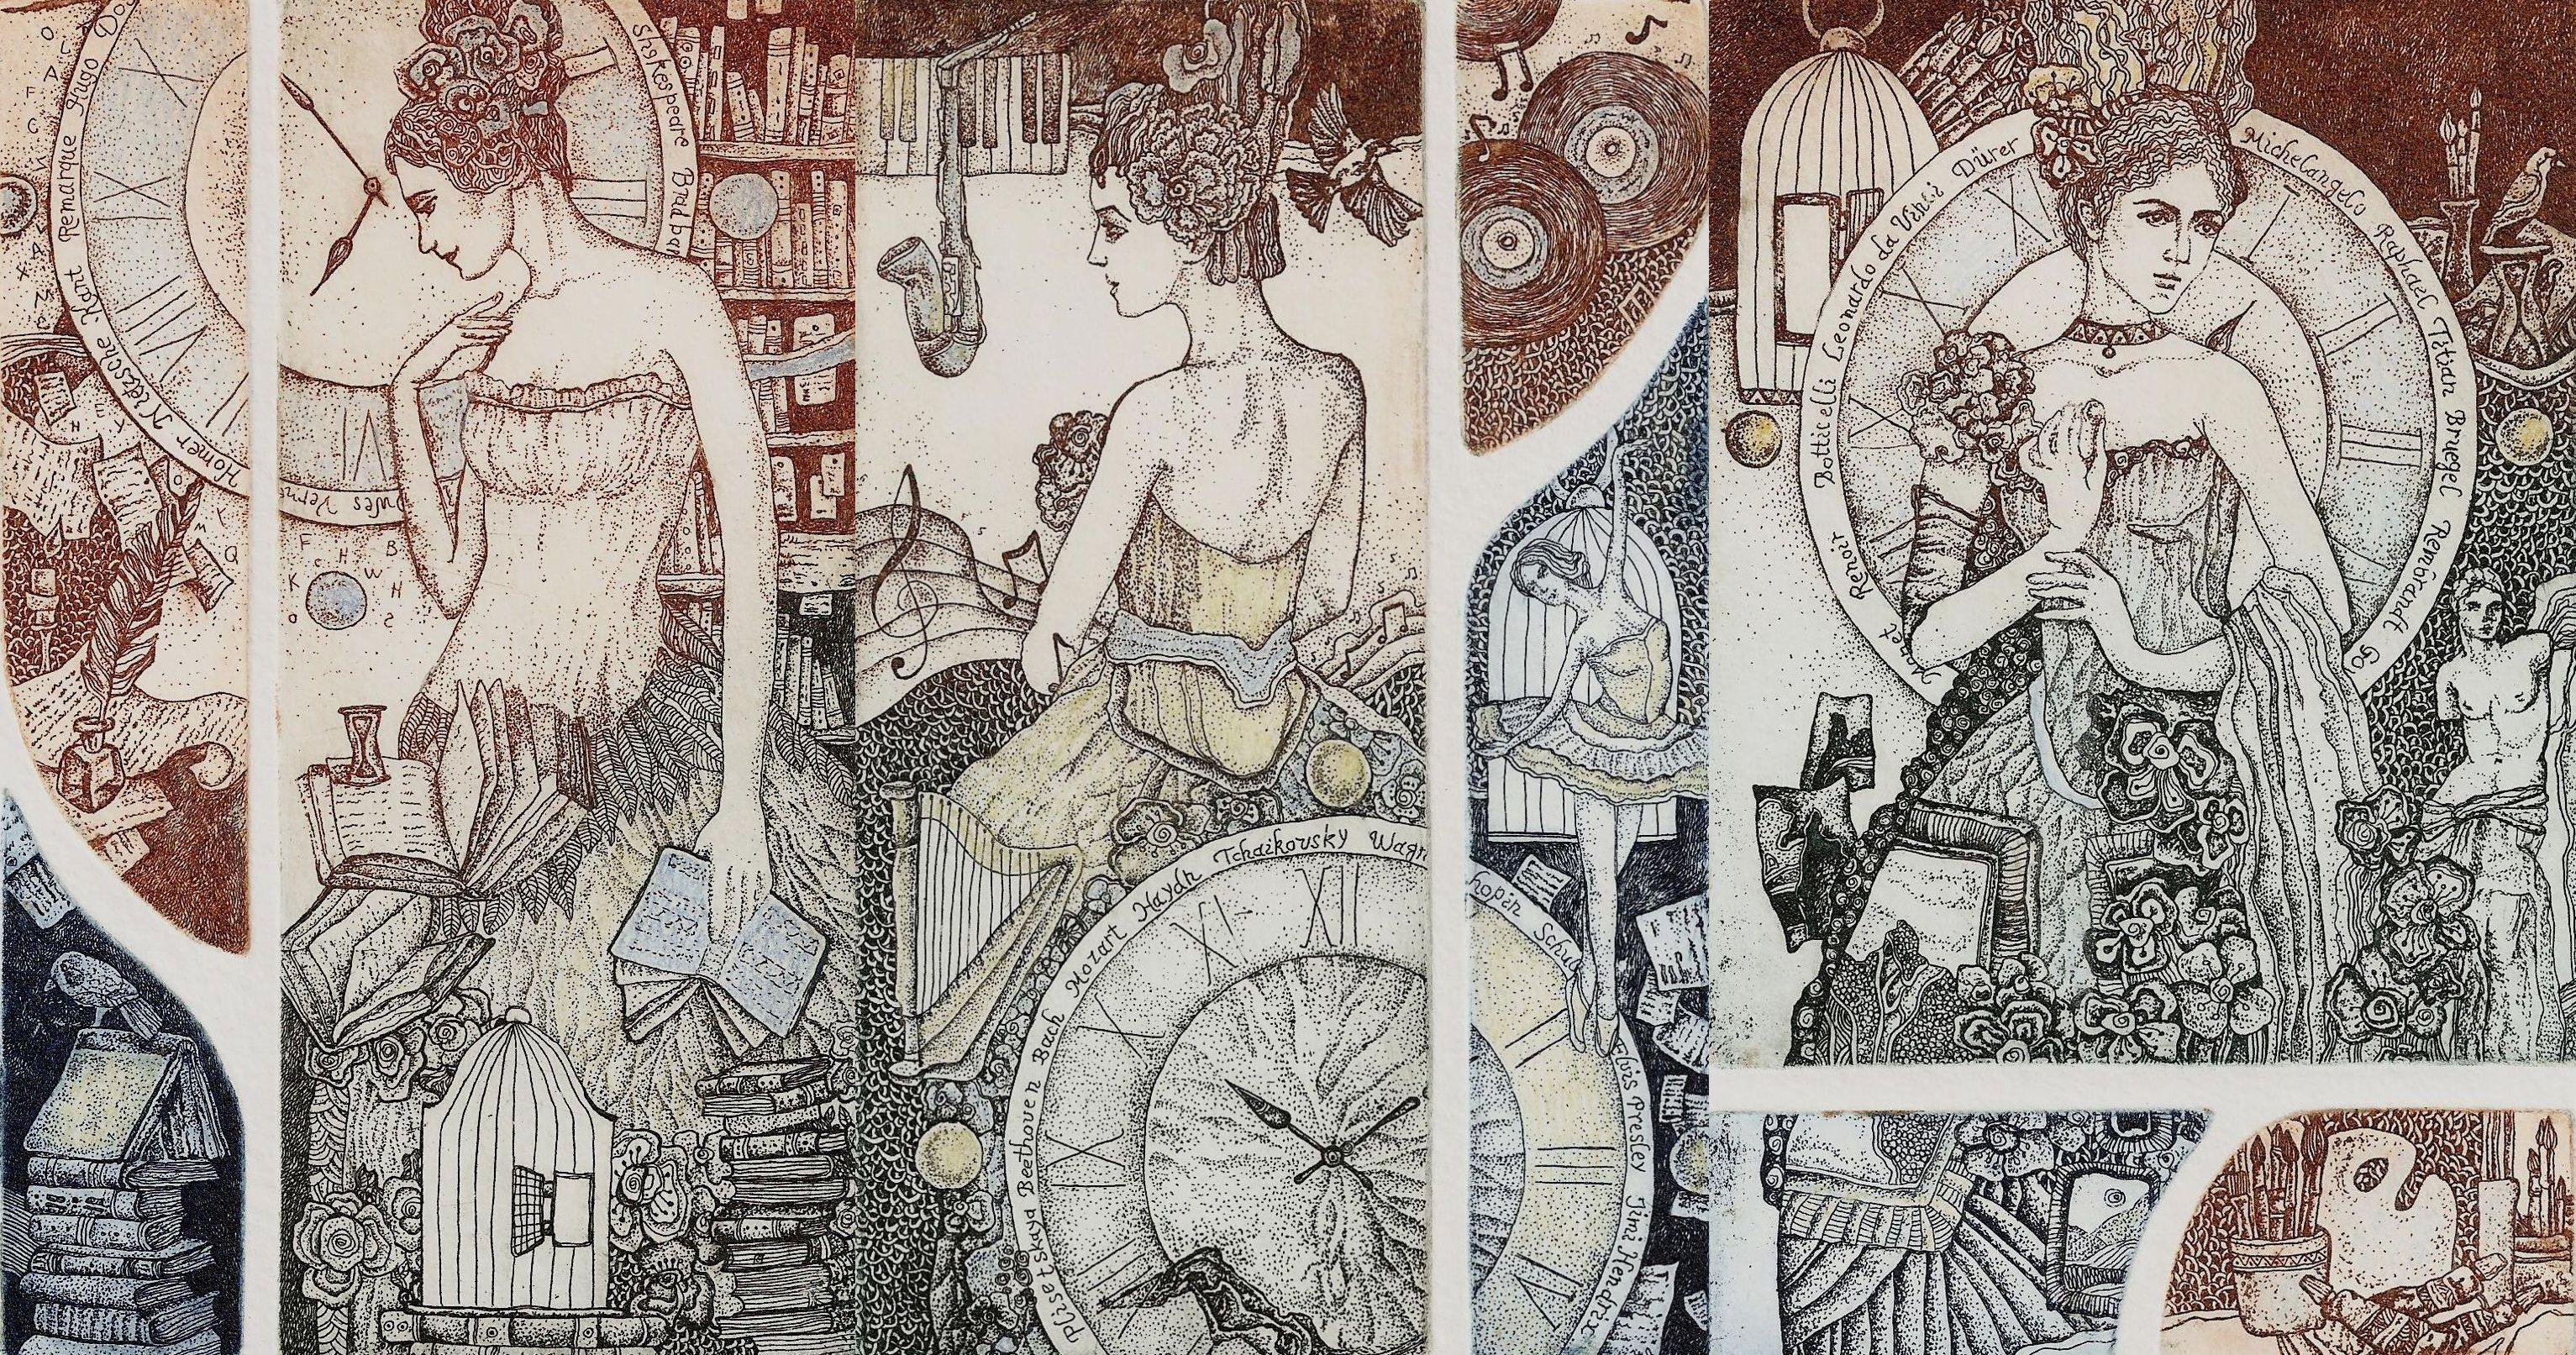 Melnikova Anastasia - Triptych: The Transience of Time